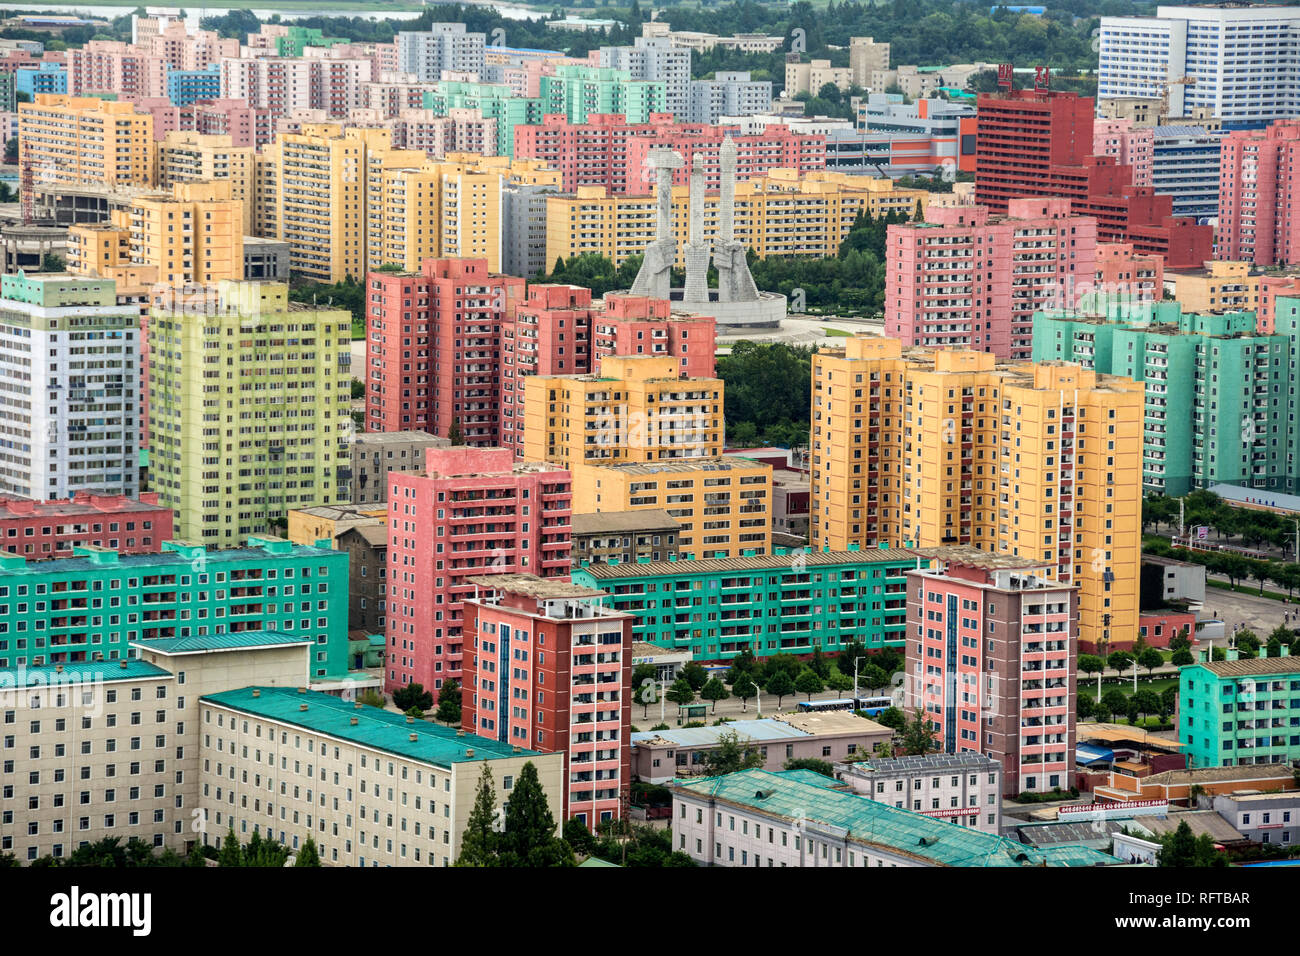 Workers' Party Monument amid painted blocks of flats, seen from Juche Tower, Pyongyang, North Korea, Asia - Stock Image